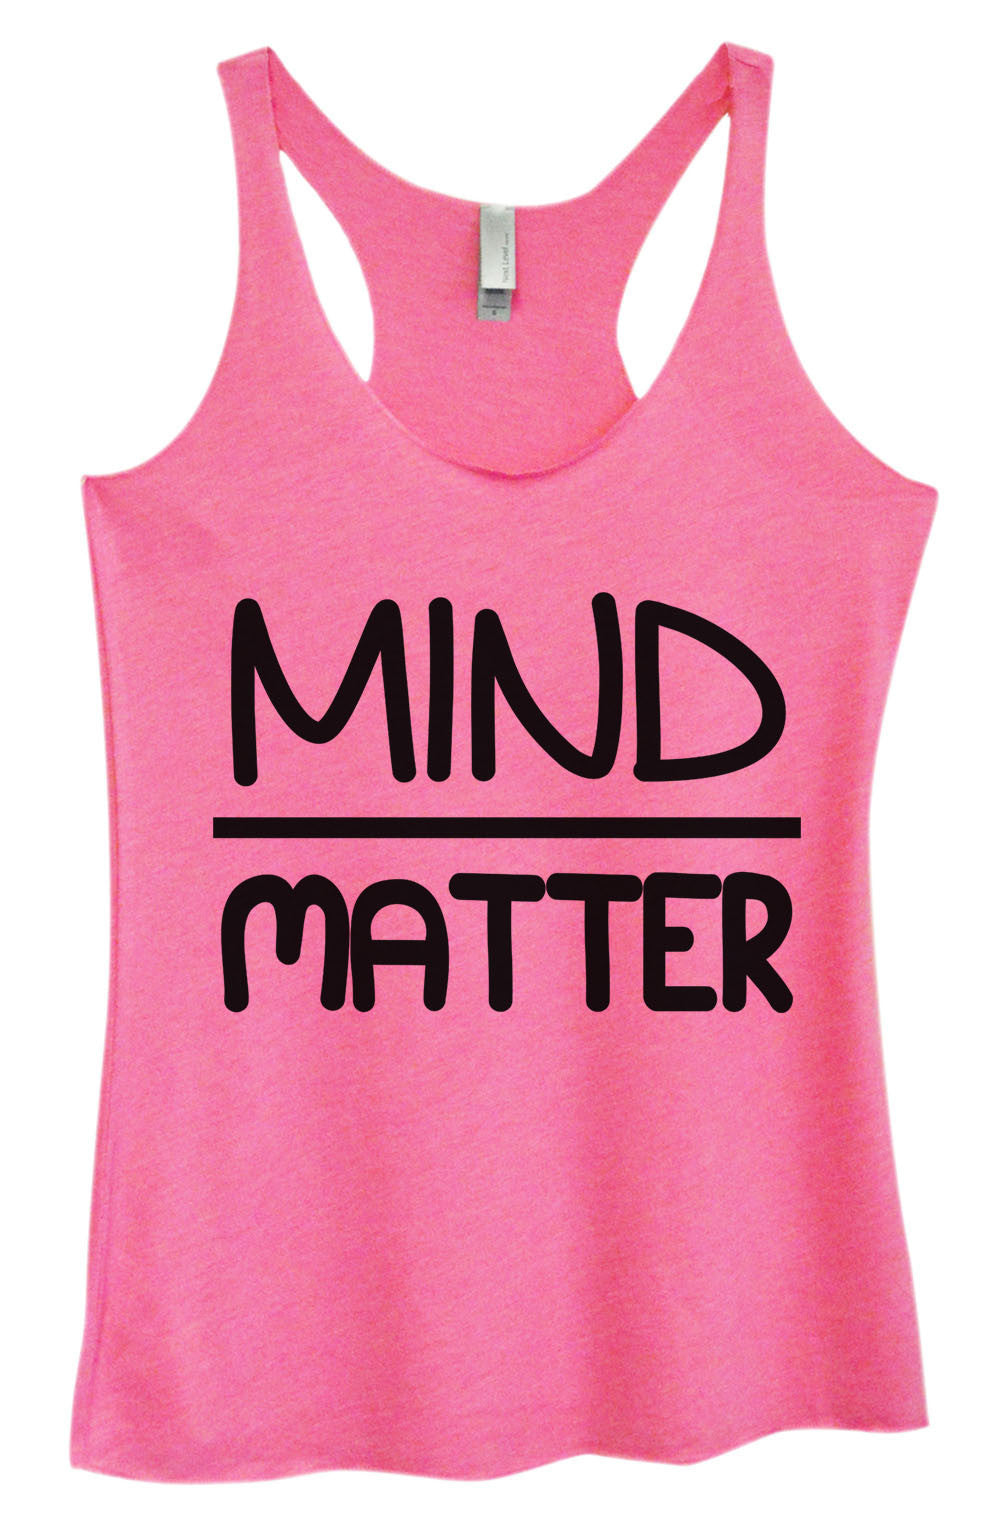 Womens Fashion Triblend Tank Top - Mind Matter - Tri-655 - Funny Shirts Tank Tops Burnouts and Triblends  - 4